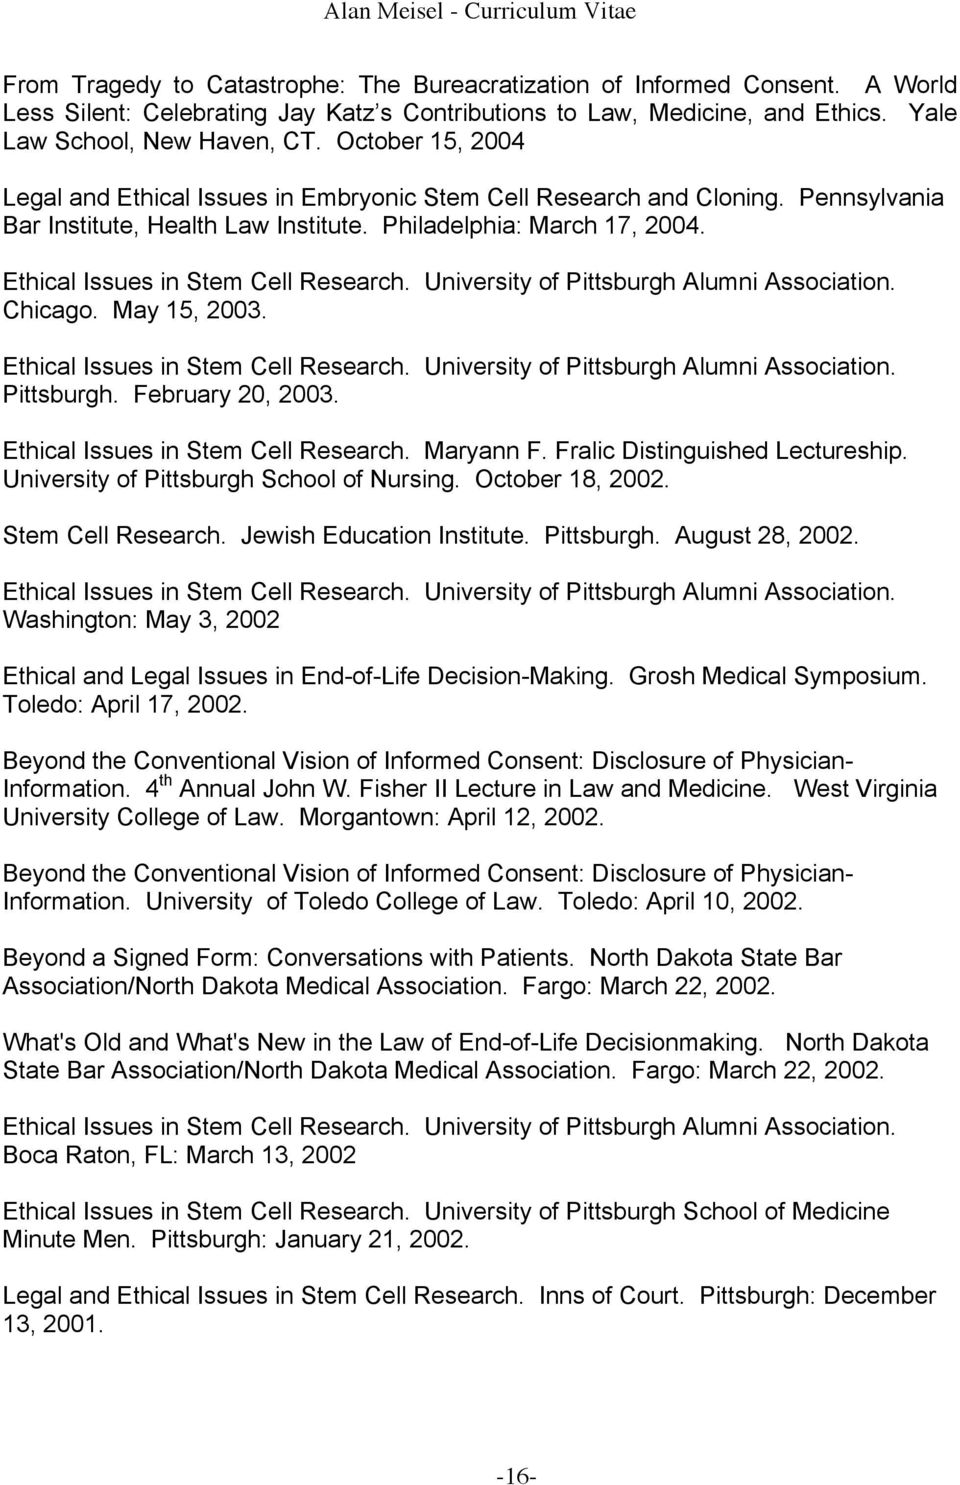 Ethical Issues in Stem Cell Research. University of Pittsburgh Alumni Association. Chicago. May 15, 2003. Ethical Issues in Stem Cell Research. University of Pittsburgh Alumni Association. Pittsburgh. February 20, 2003.